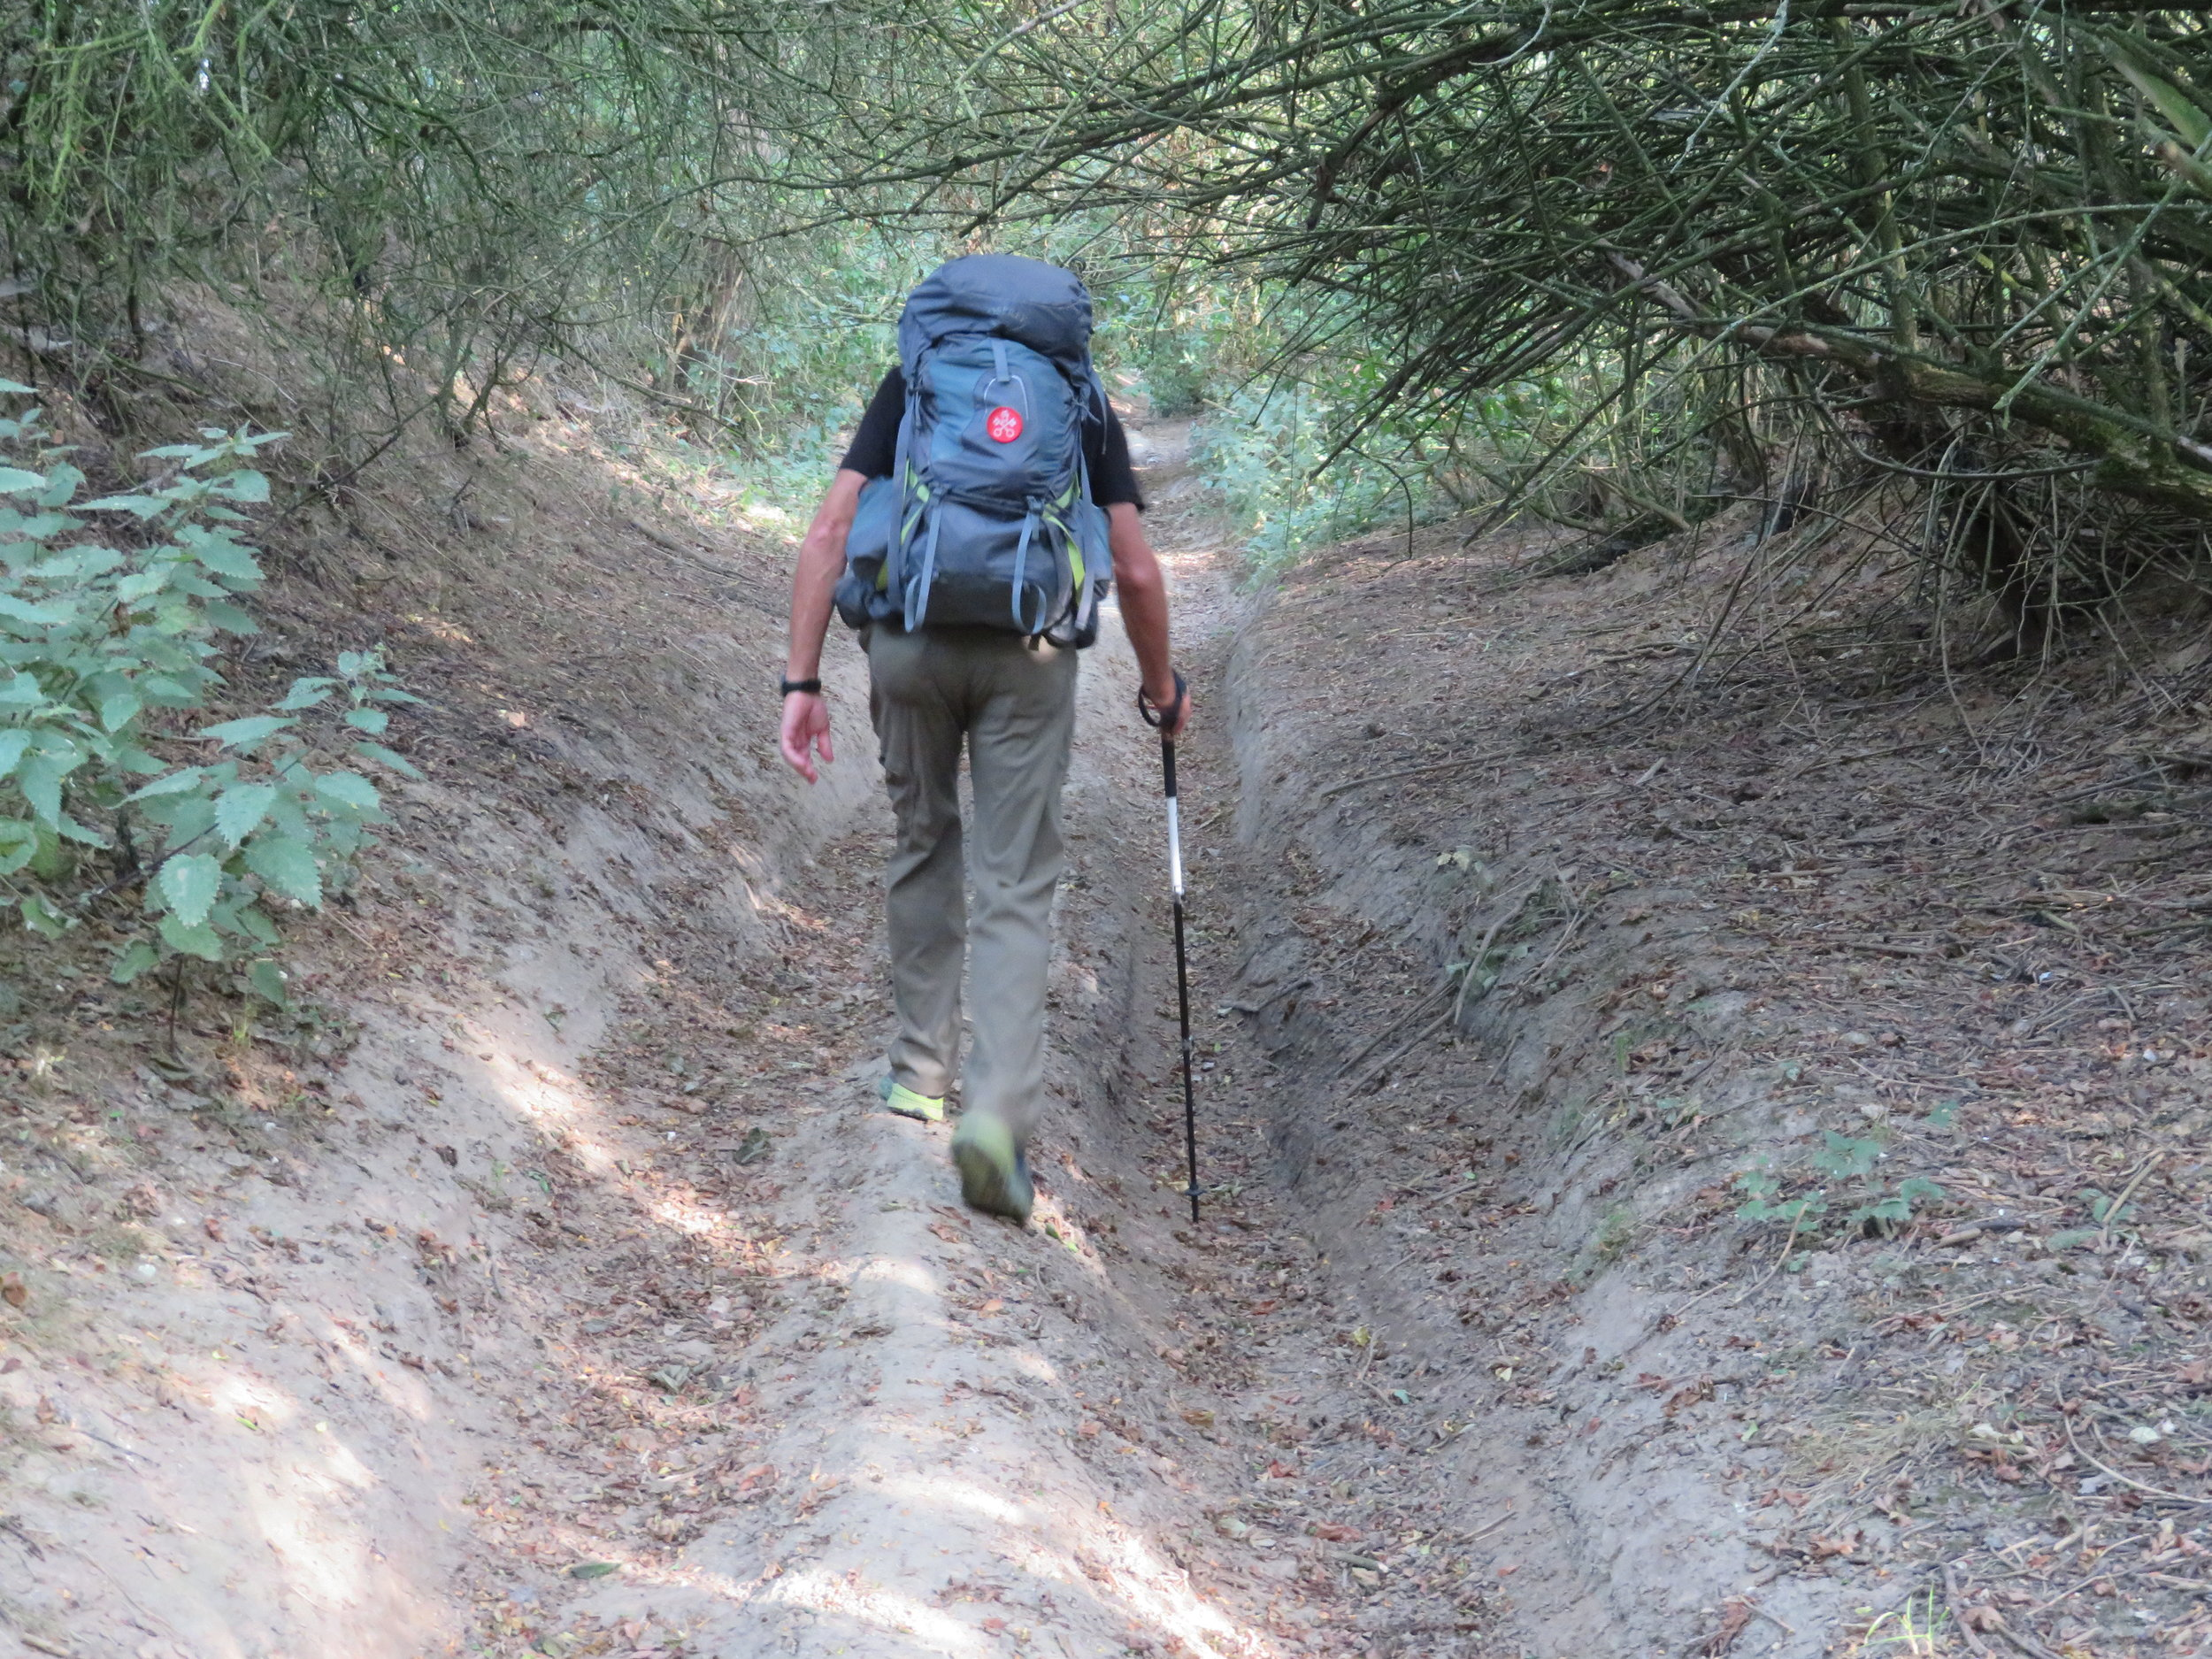 Deep, rutted roads made walking somewhat difficult at times